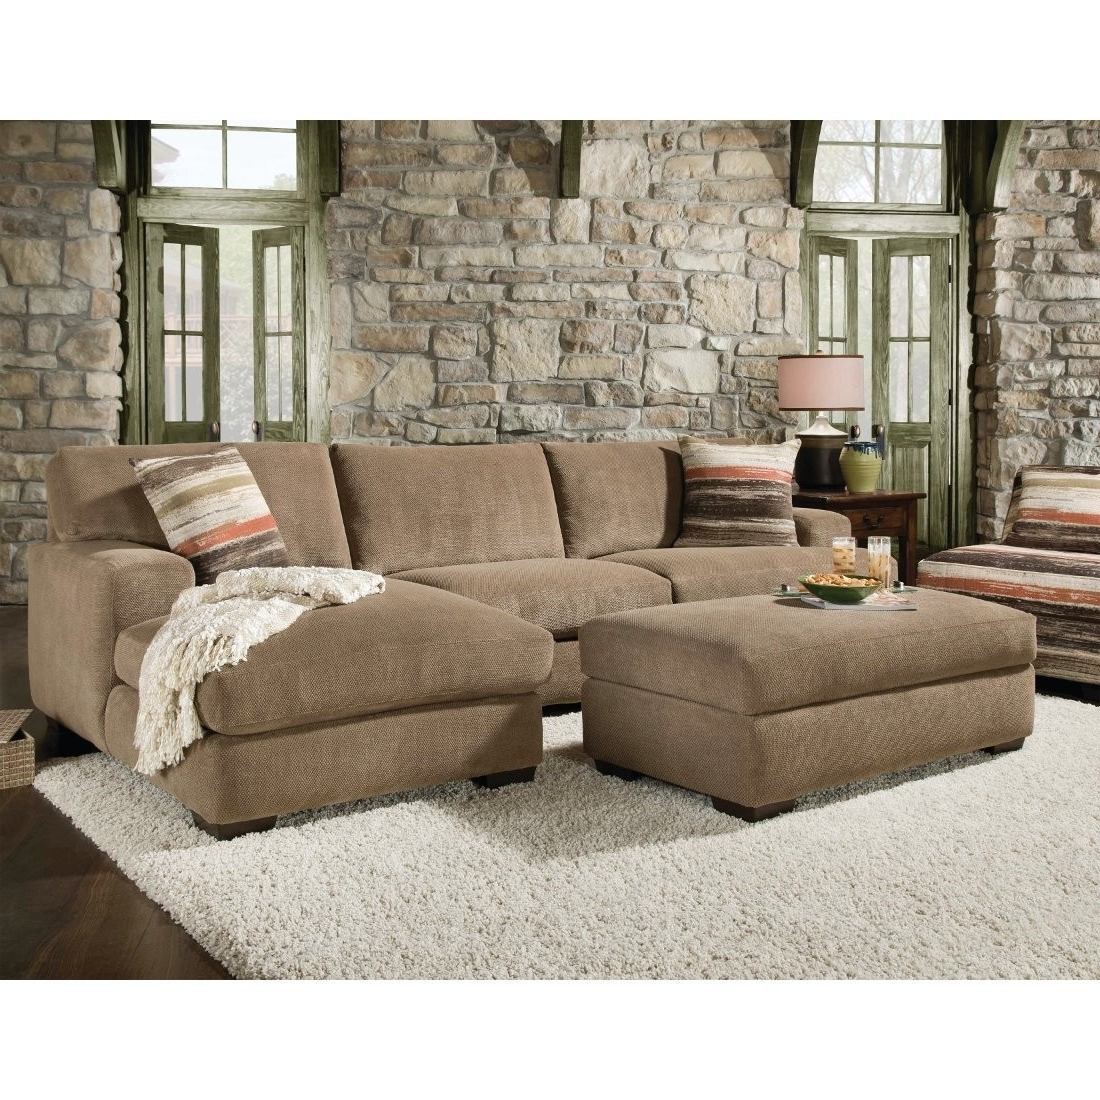 Most Recent 2 Piece Sectional Sofas With Chaise Within 2 Piece Sectional Sofa With Chaise Design (View 9 of 15)